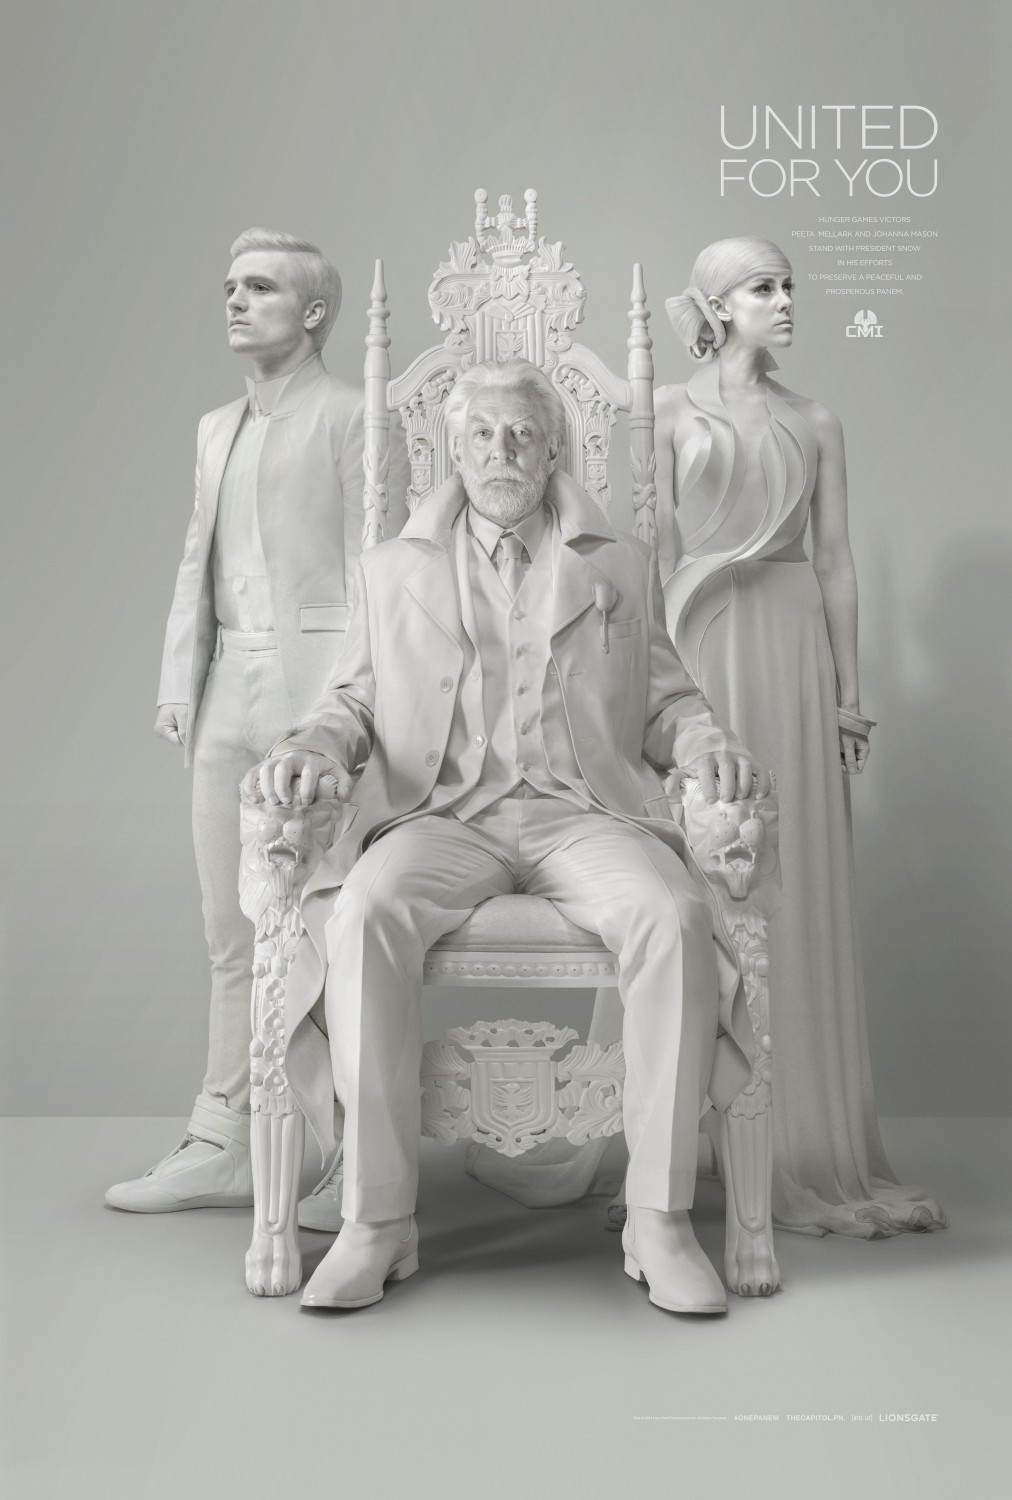 The Hunger Games Mockingjay Part 1s President Snow Second Panem Address Unity The Hunger Games: Mockingjay Part 1s President Snow Talks Unity